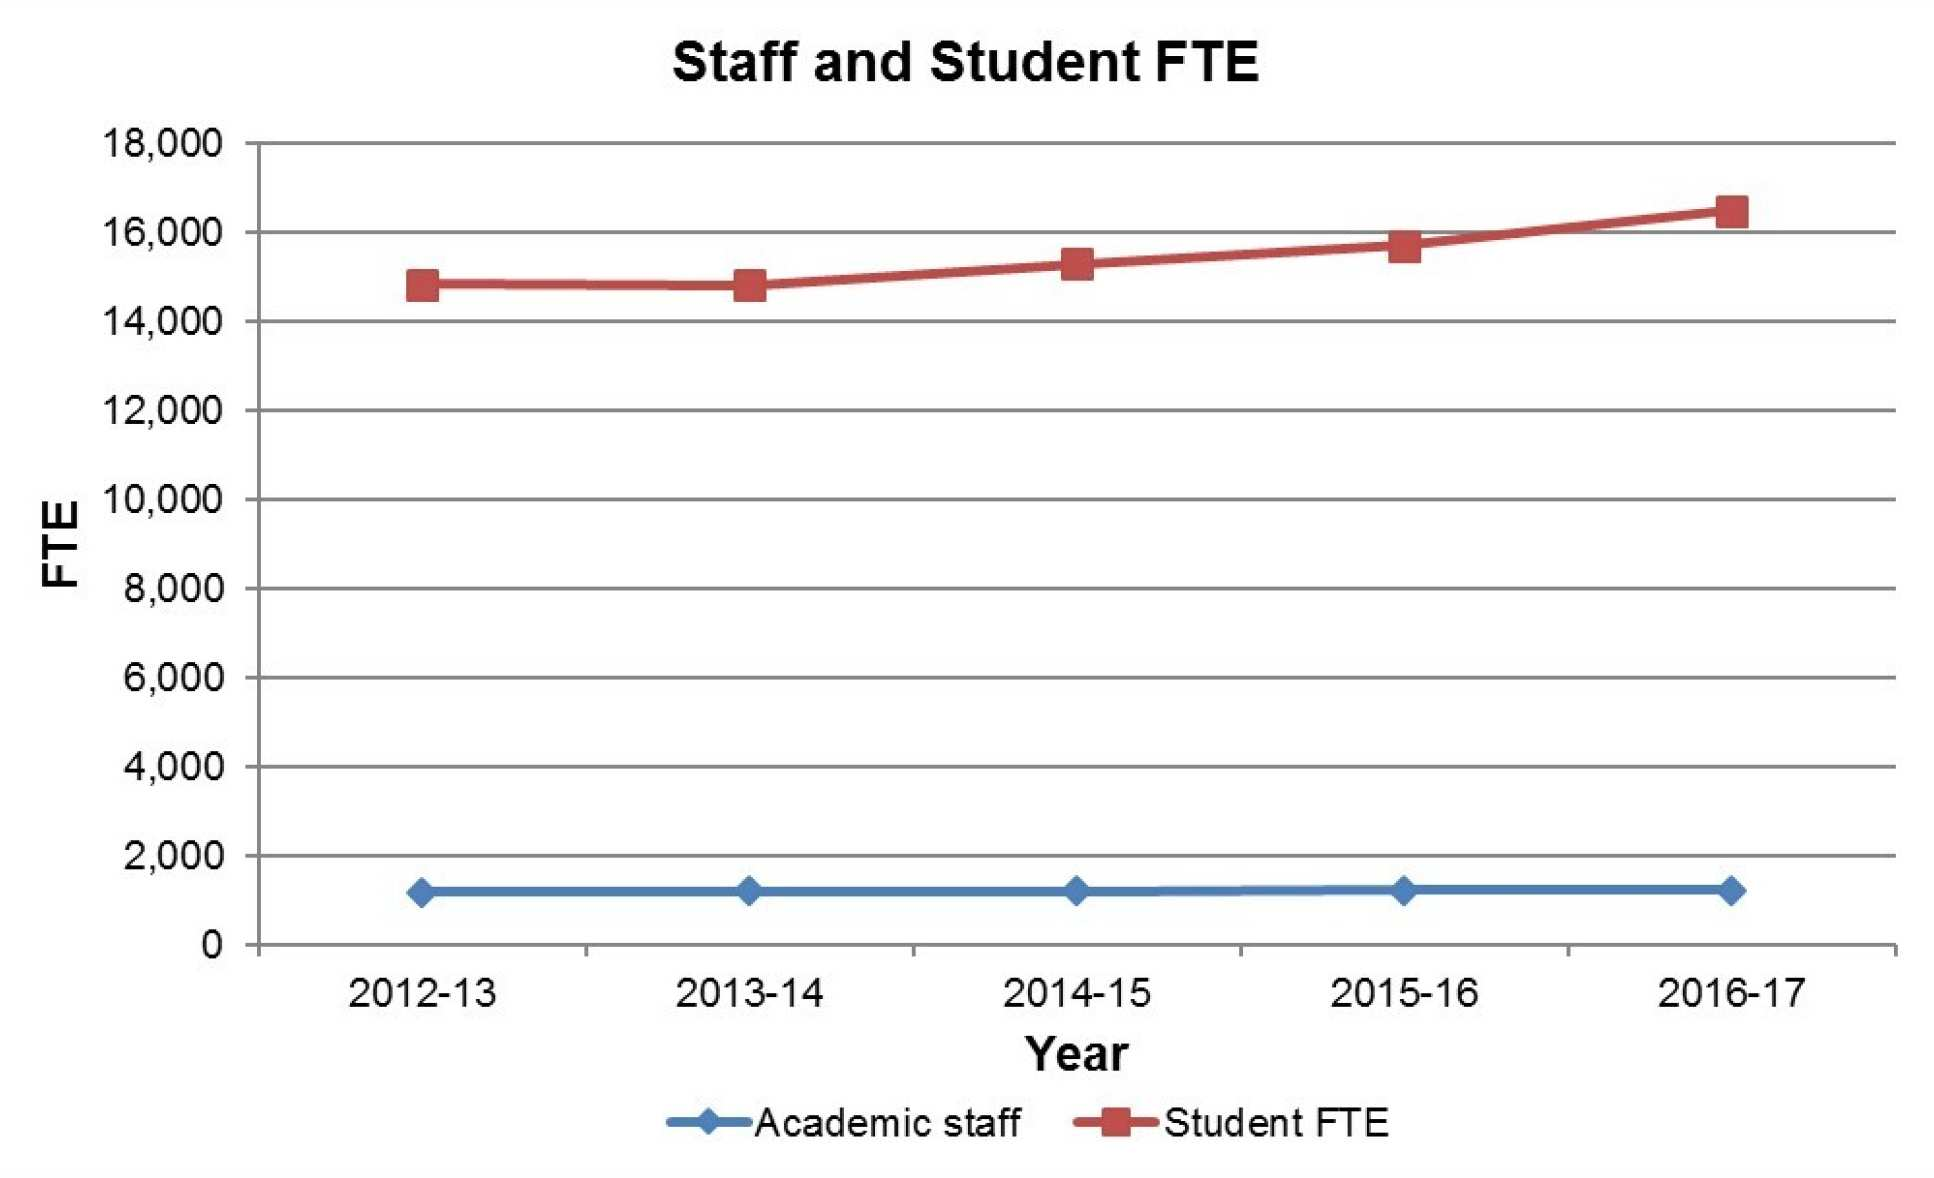 Staff and Student FTE